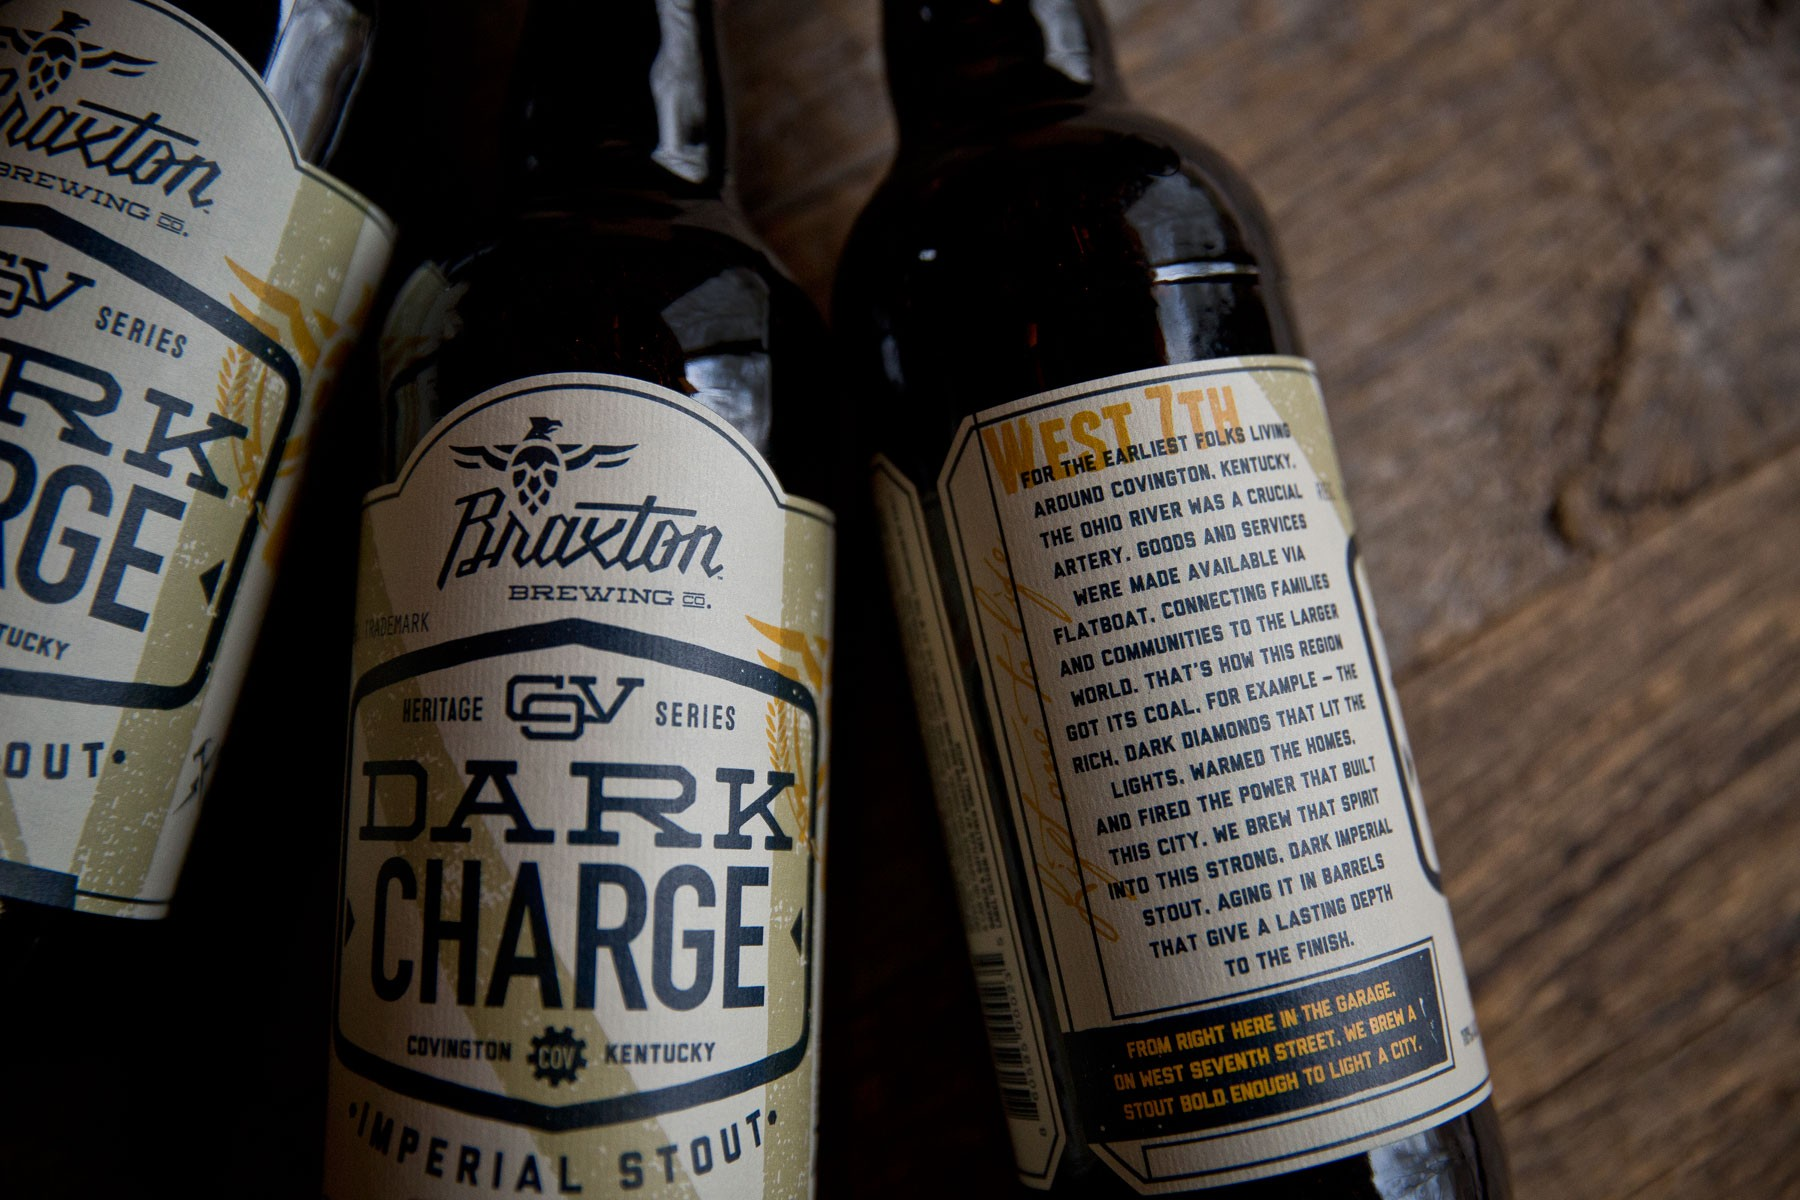 DarkCharge_07